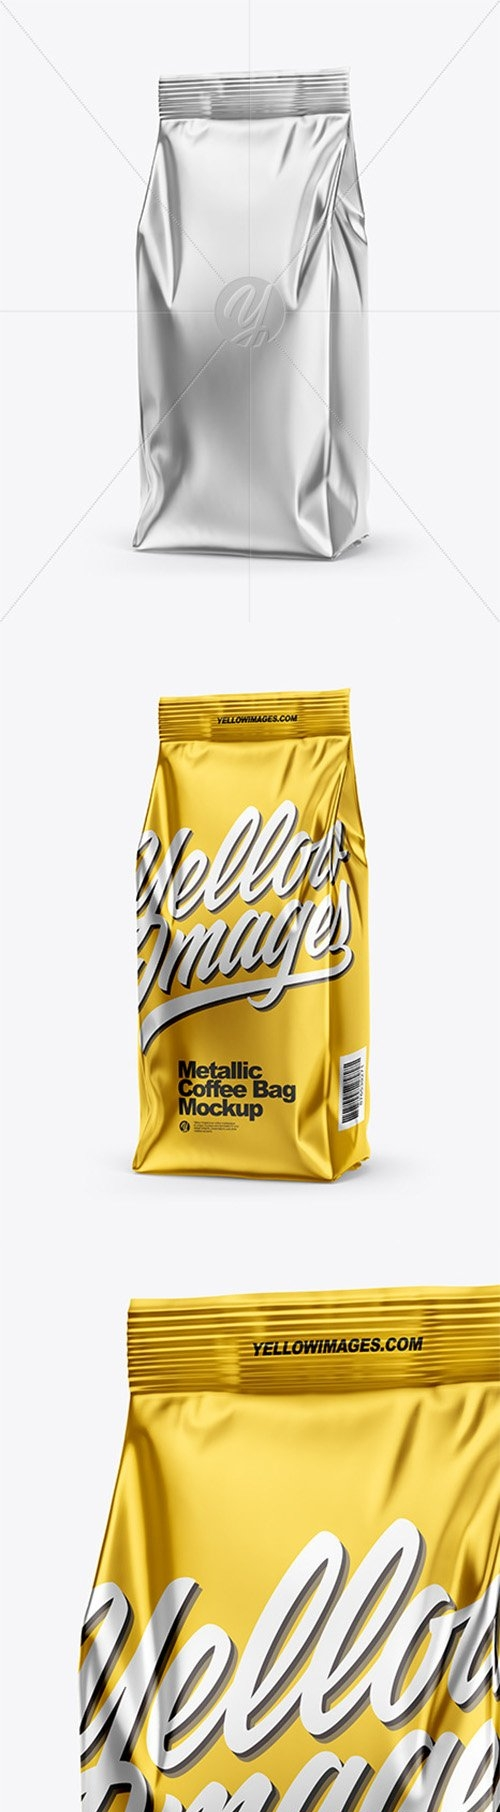 Metallic Coffee Bag Mockup - Half Side View 66549